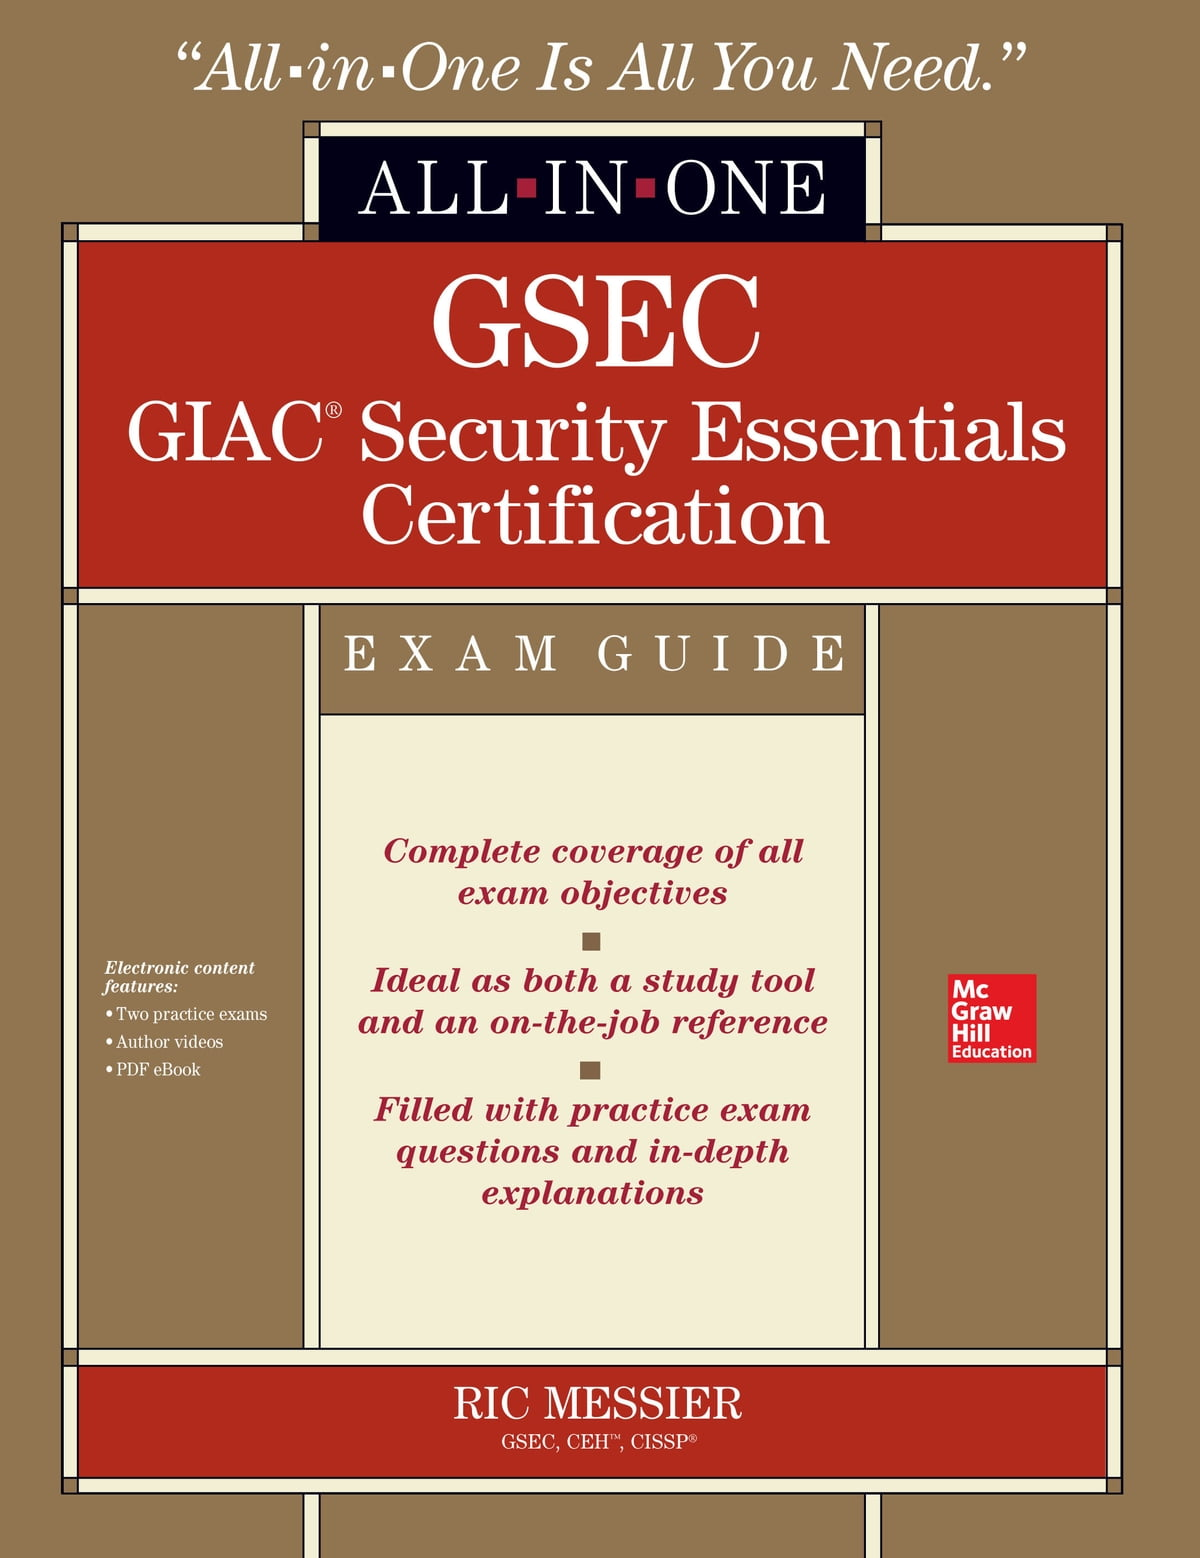 Gsec giac security essentials certification all in one exam guide gsec giac security essentials certification all in one exam guide ebook by ric messier 9780071820905 rakuten kobo xflitez Images